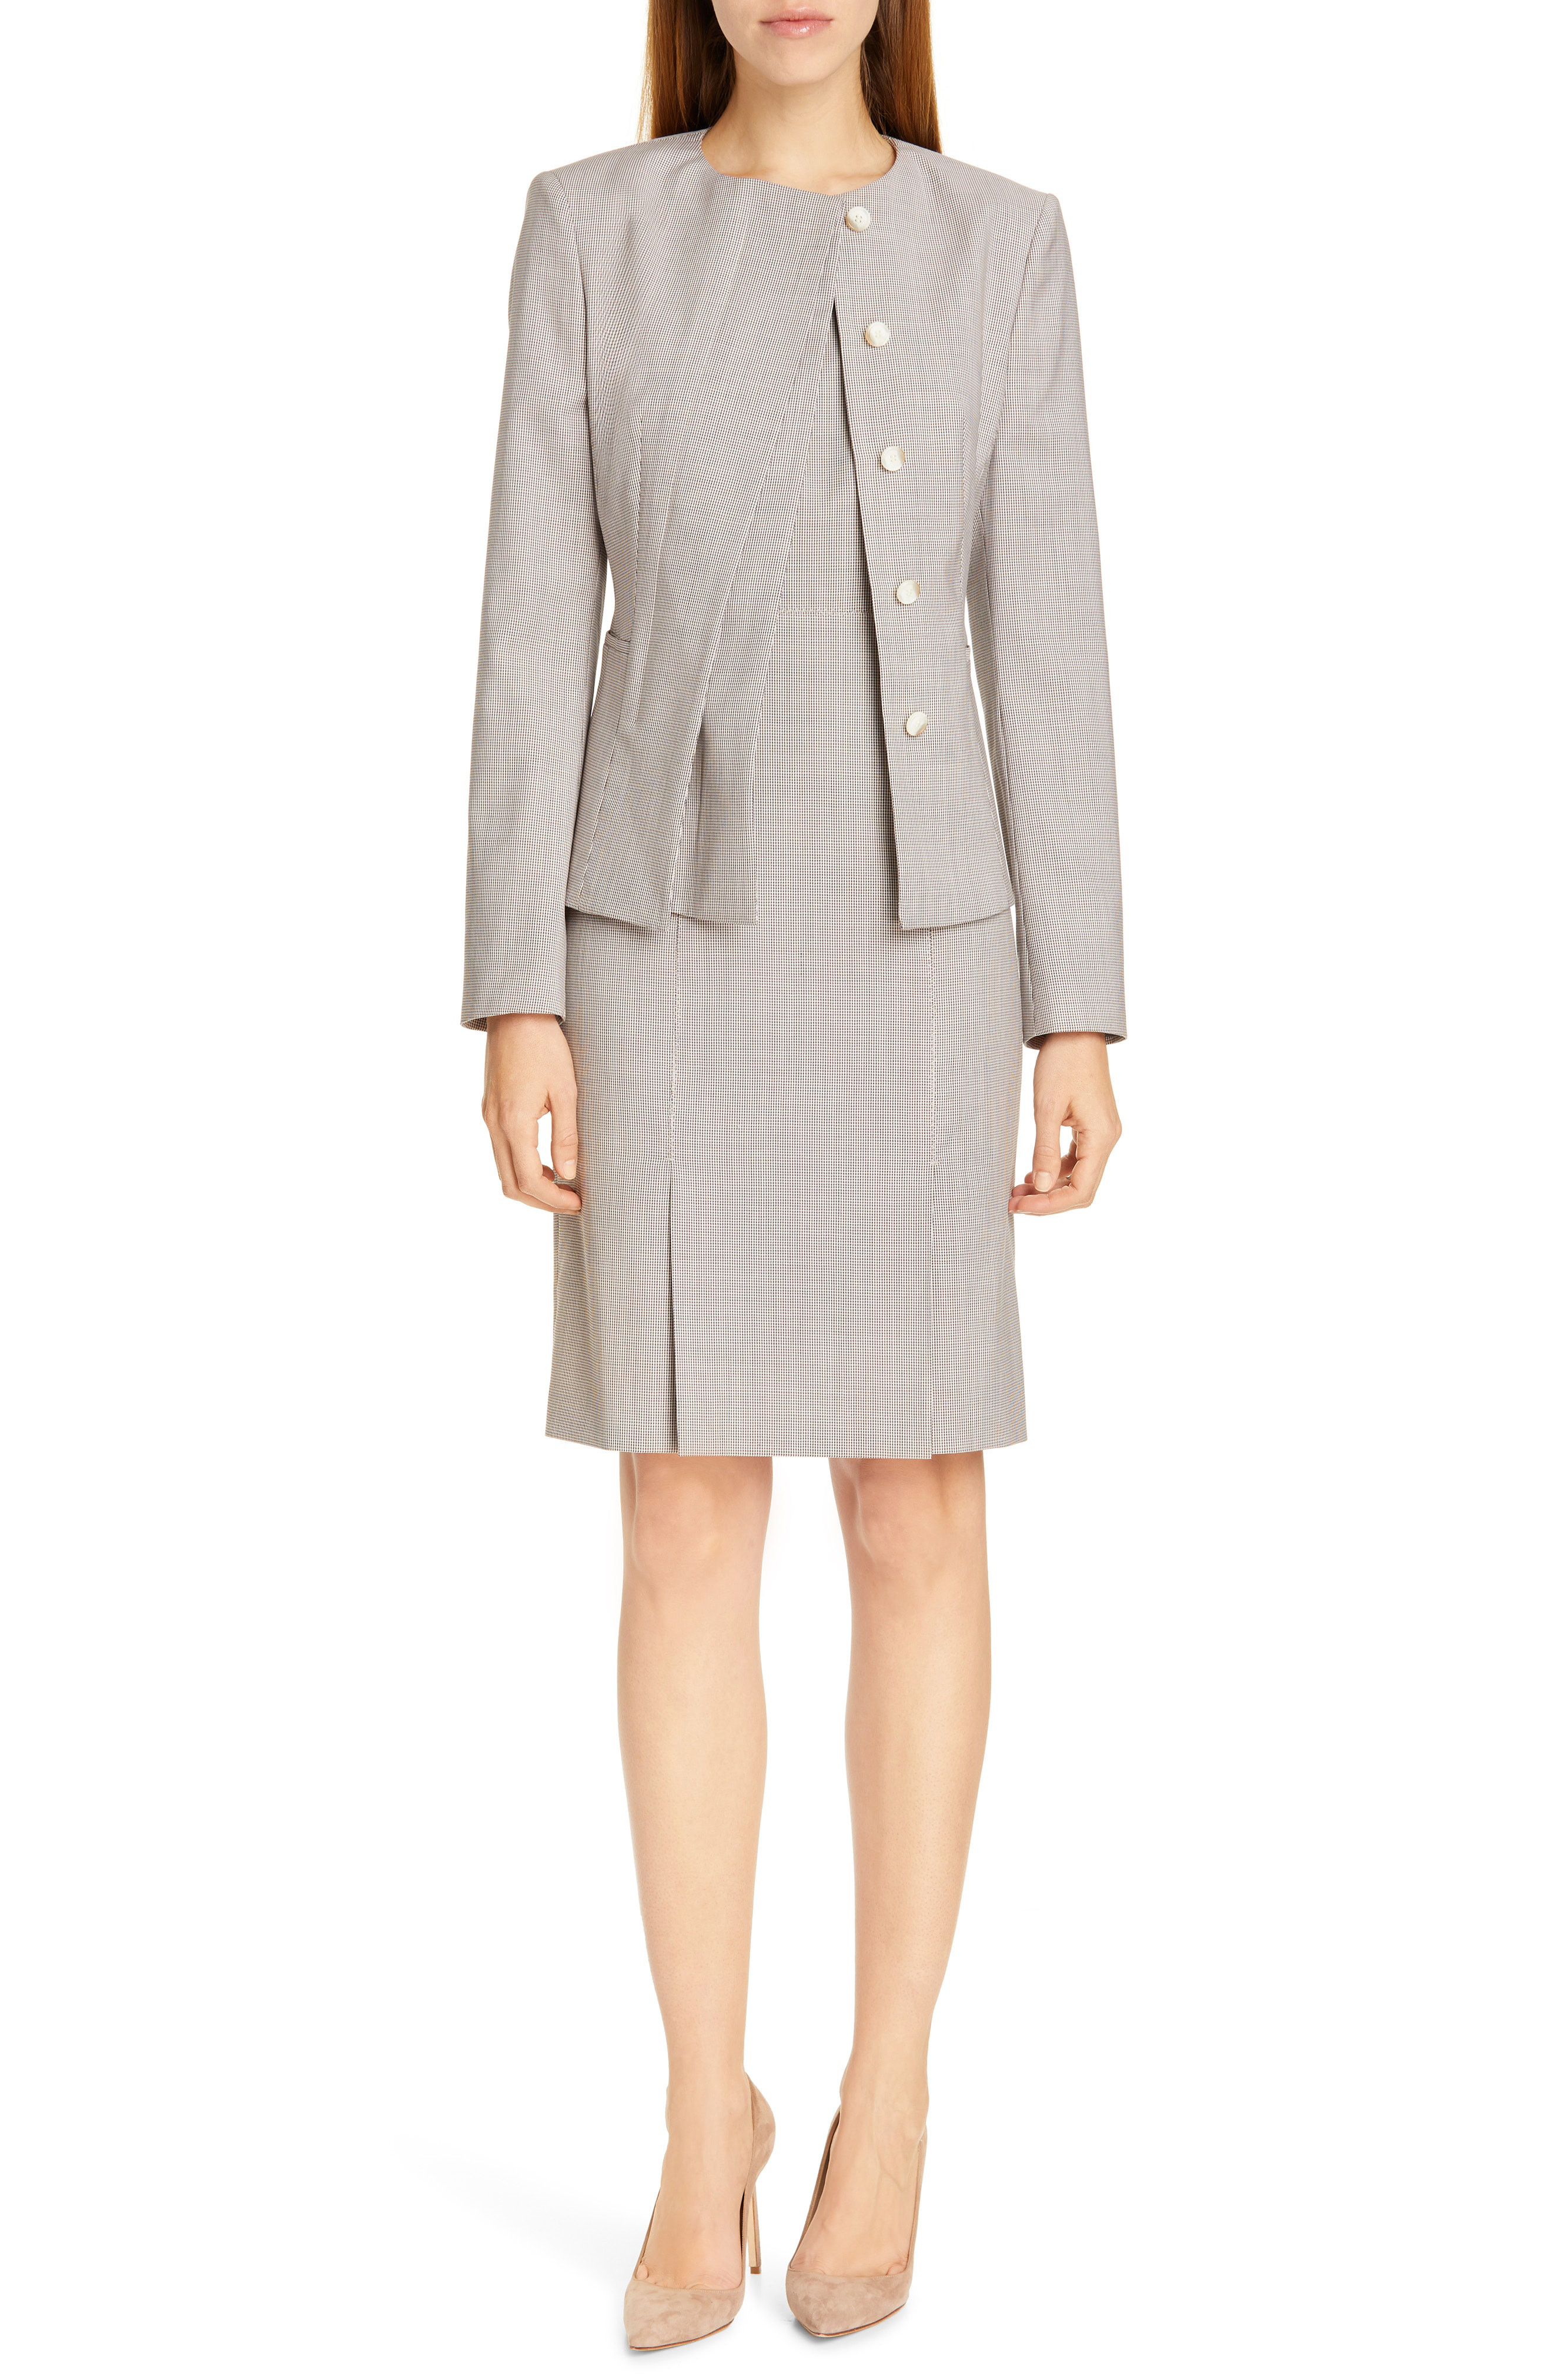 c5abe8ae15a Boss Jadela Mini Houndstooth Wool Suit Jacket In Vanilla Lavender ...